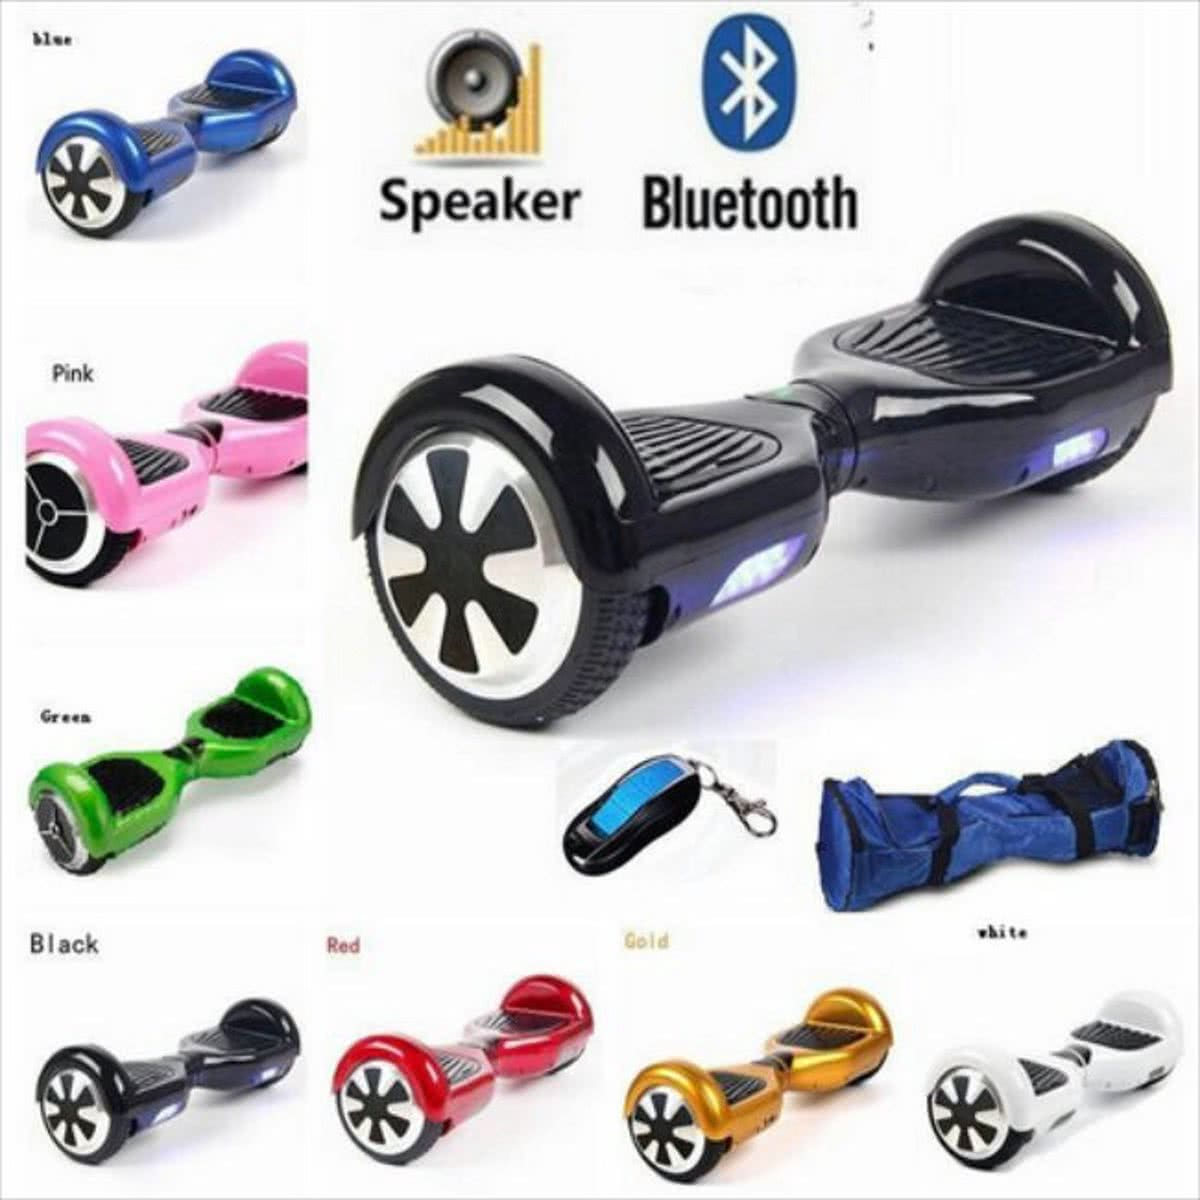 Hoverboard INAR P5B BT Zwart Incl. Bluetooth en speakers